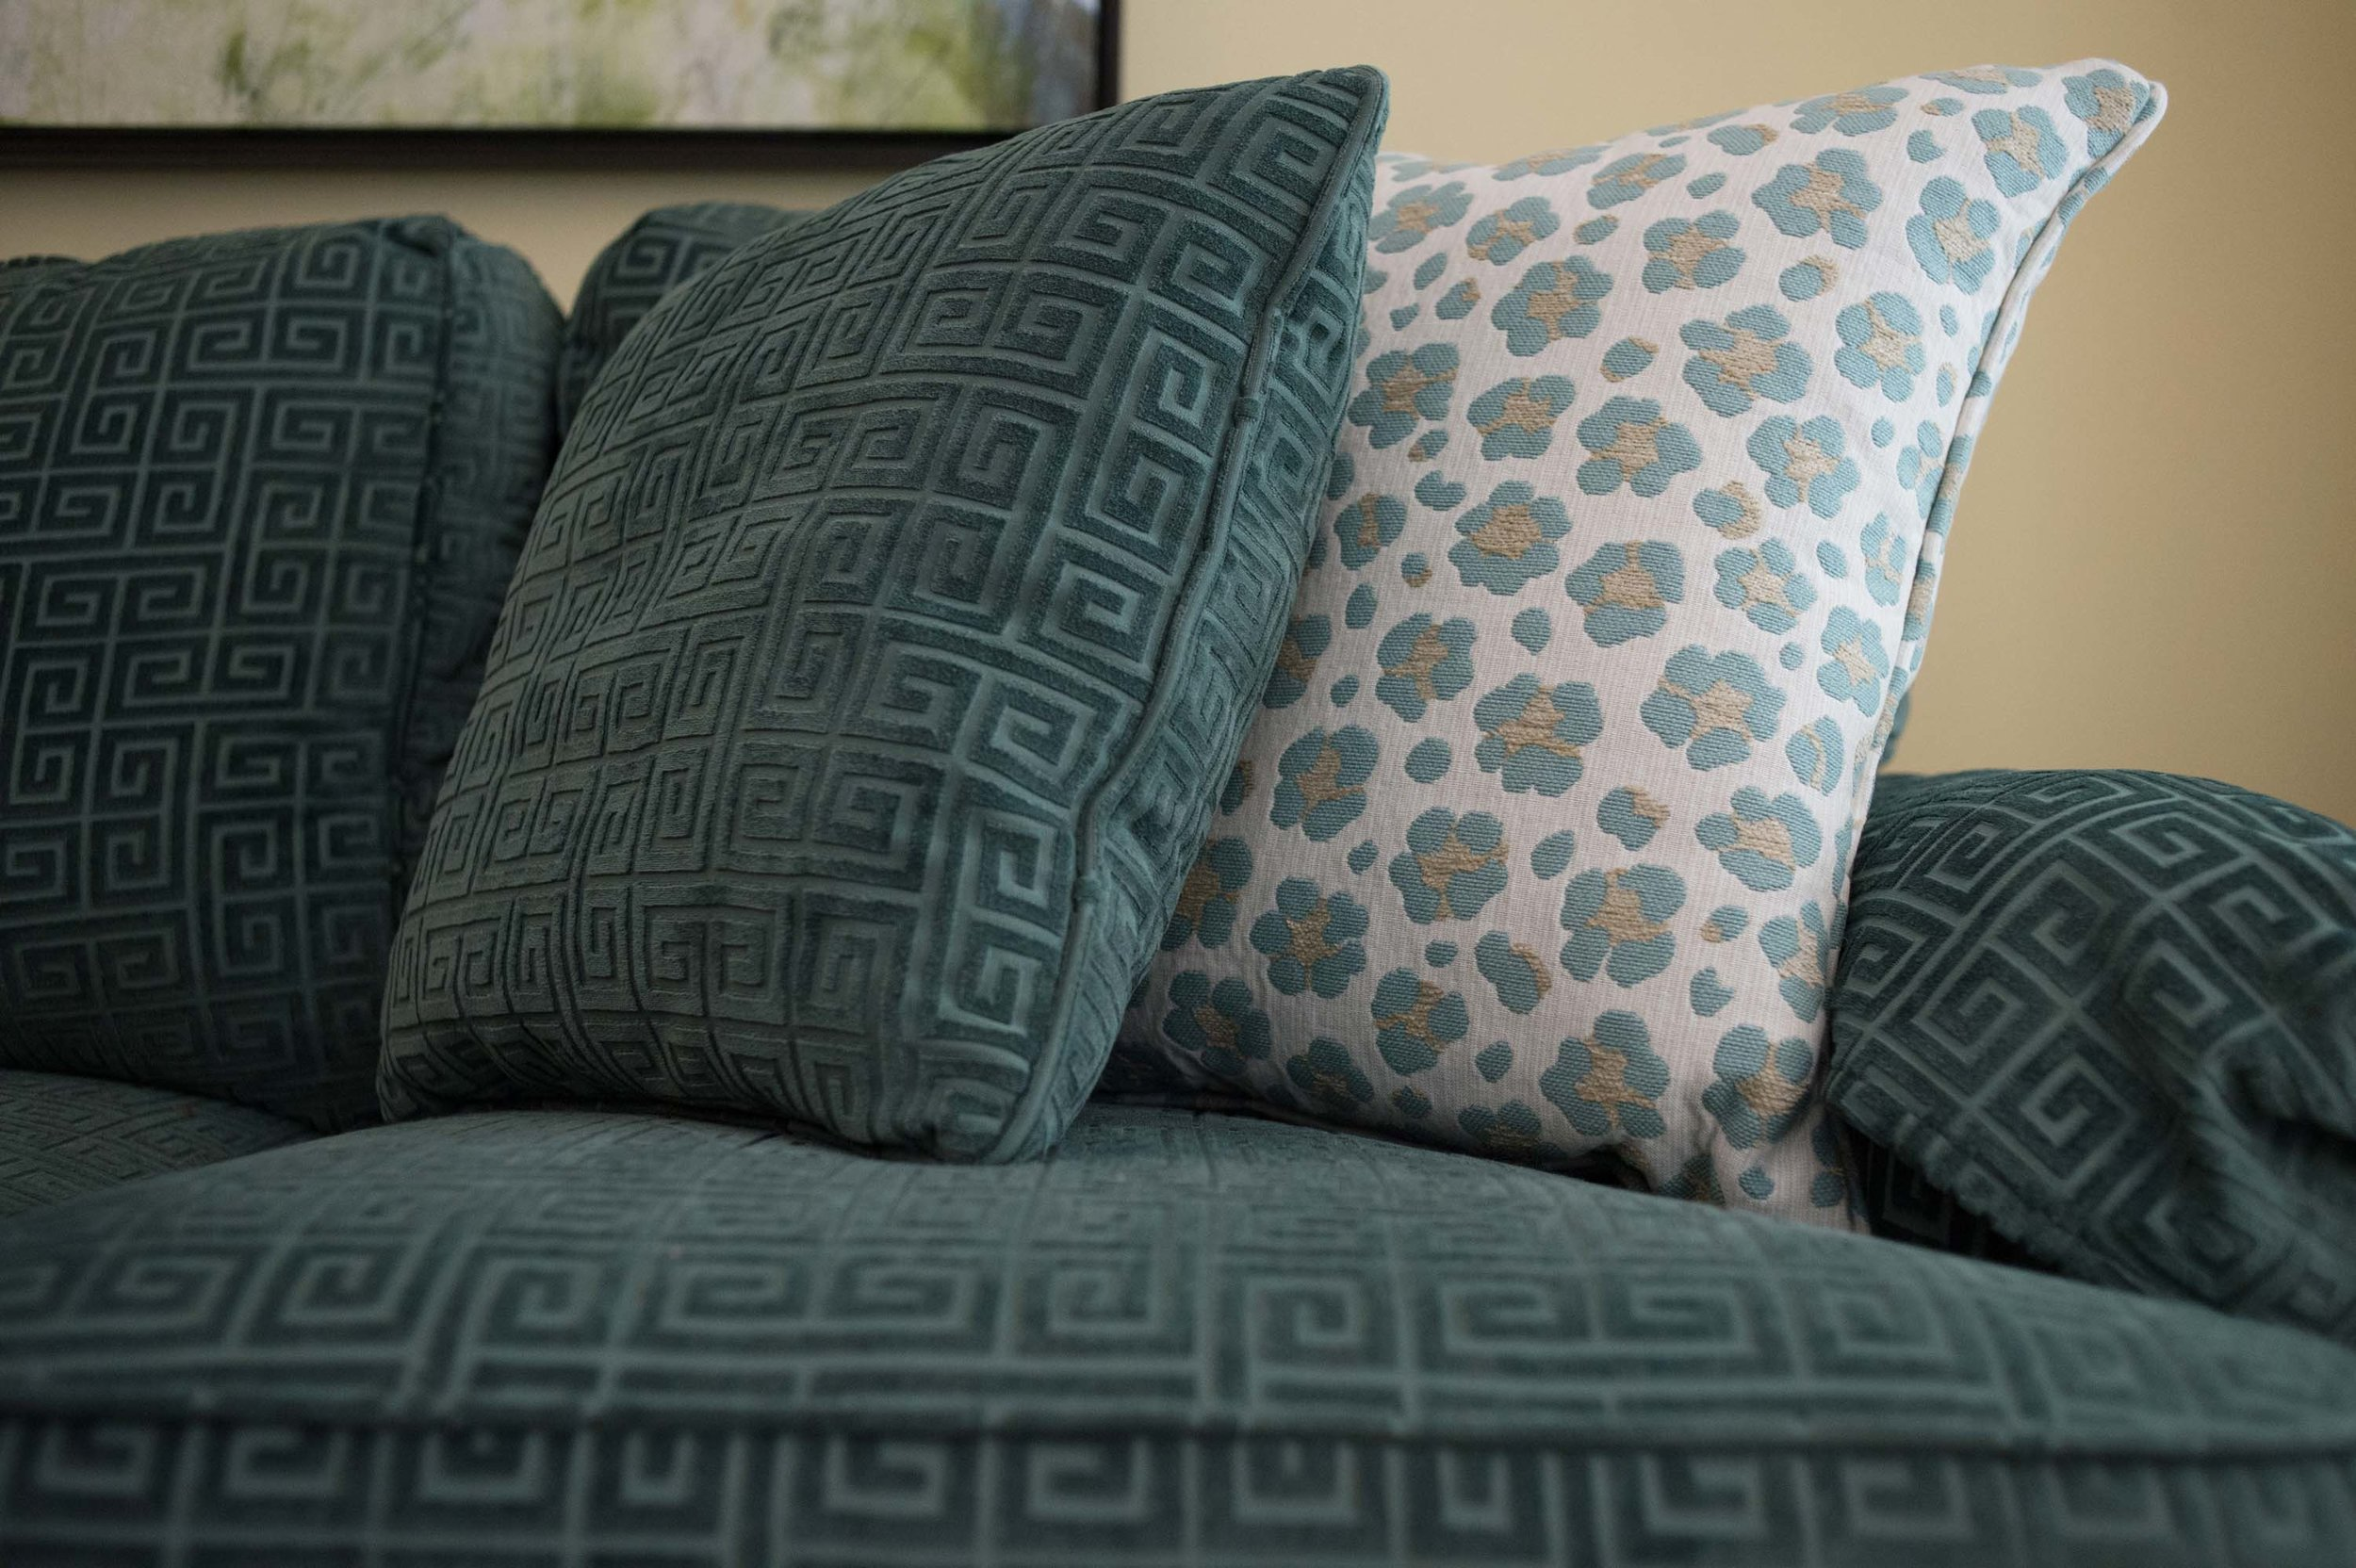 Set of pillows on the sofa